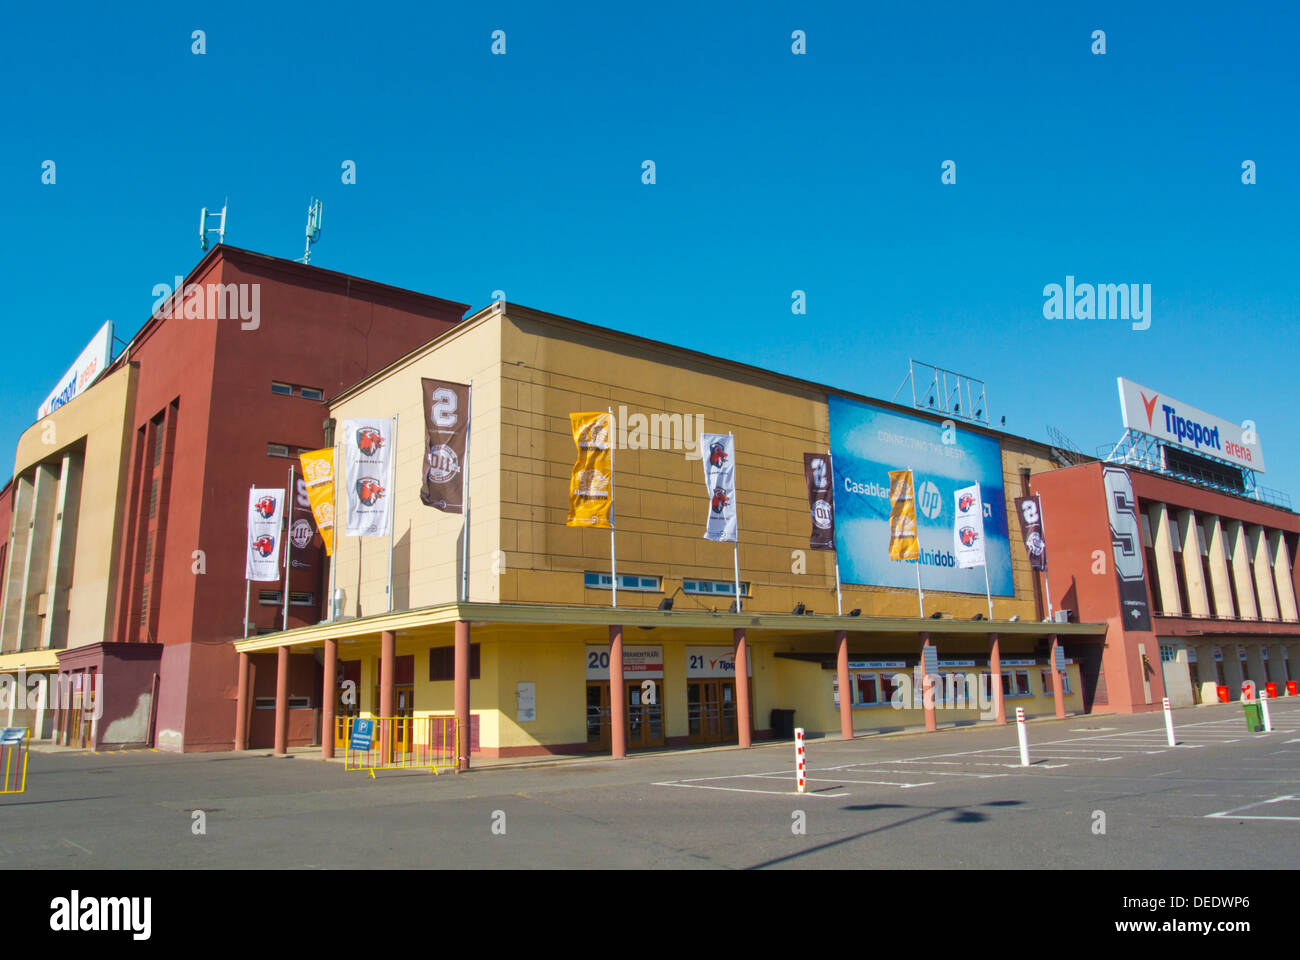 Tipsport Arena aka Sportovni Hala (1962) ice hockey arena Vystaviste exhibition grounds Holesovice district Prague Czech Rep - Stock Image